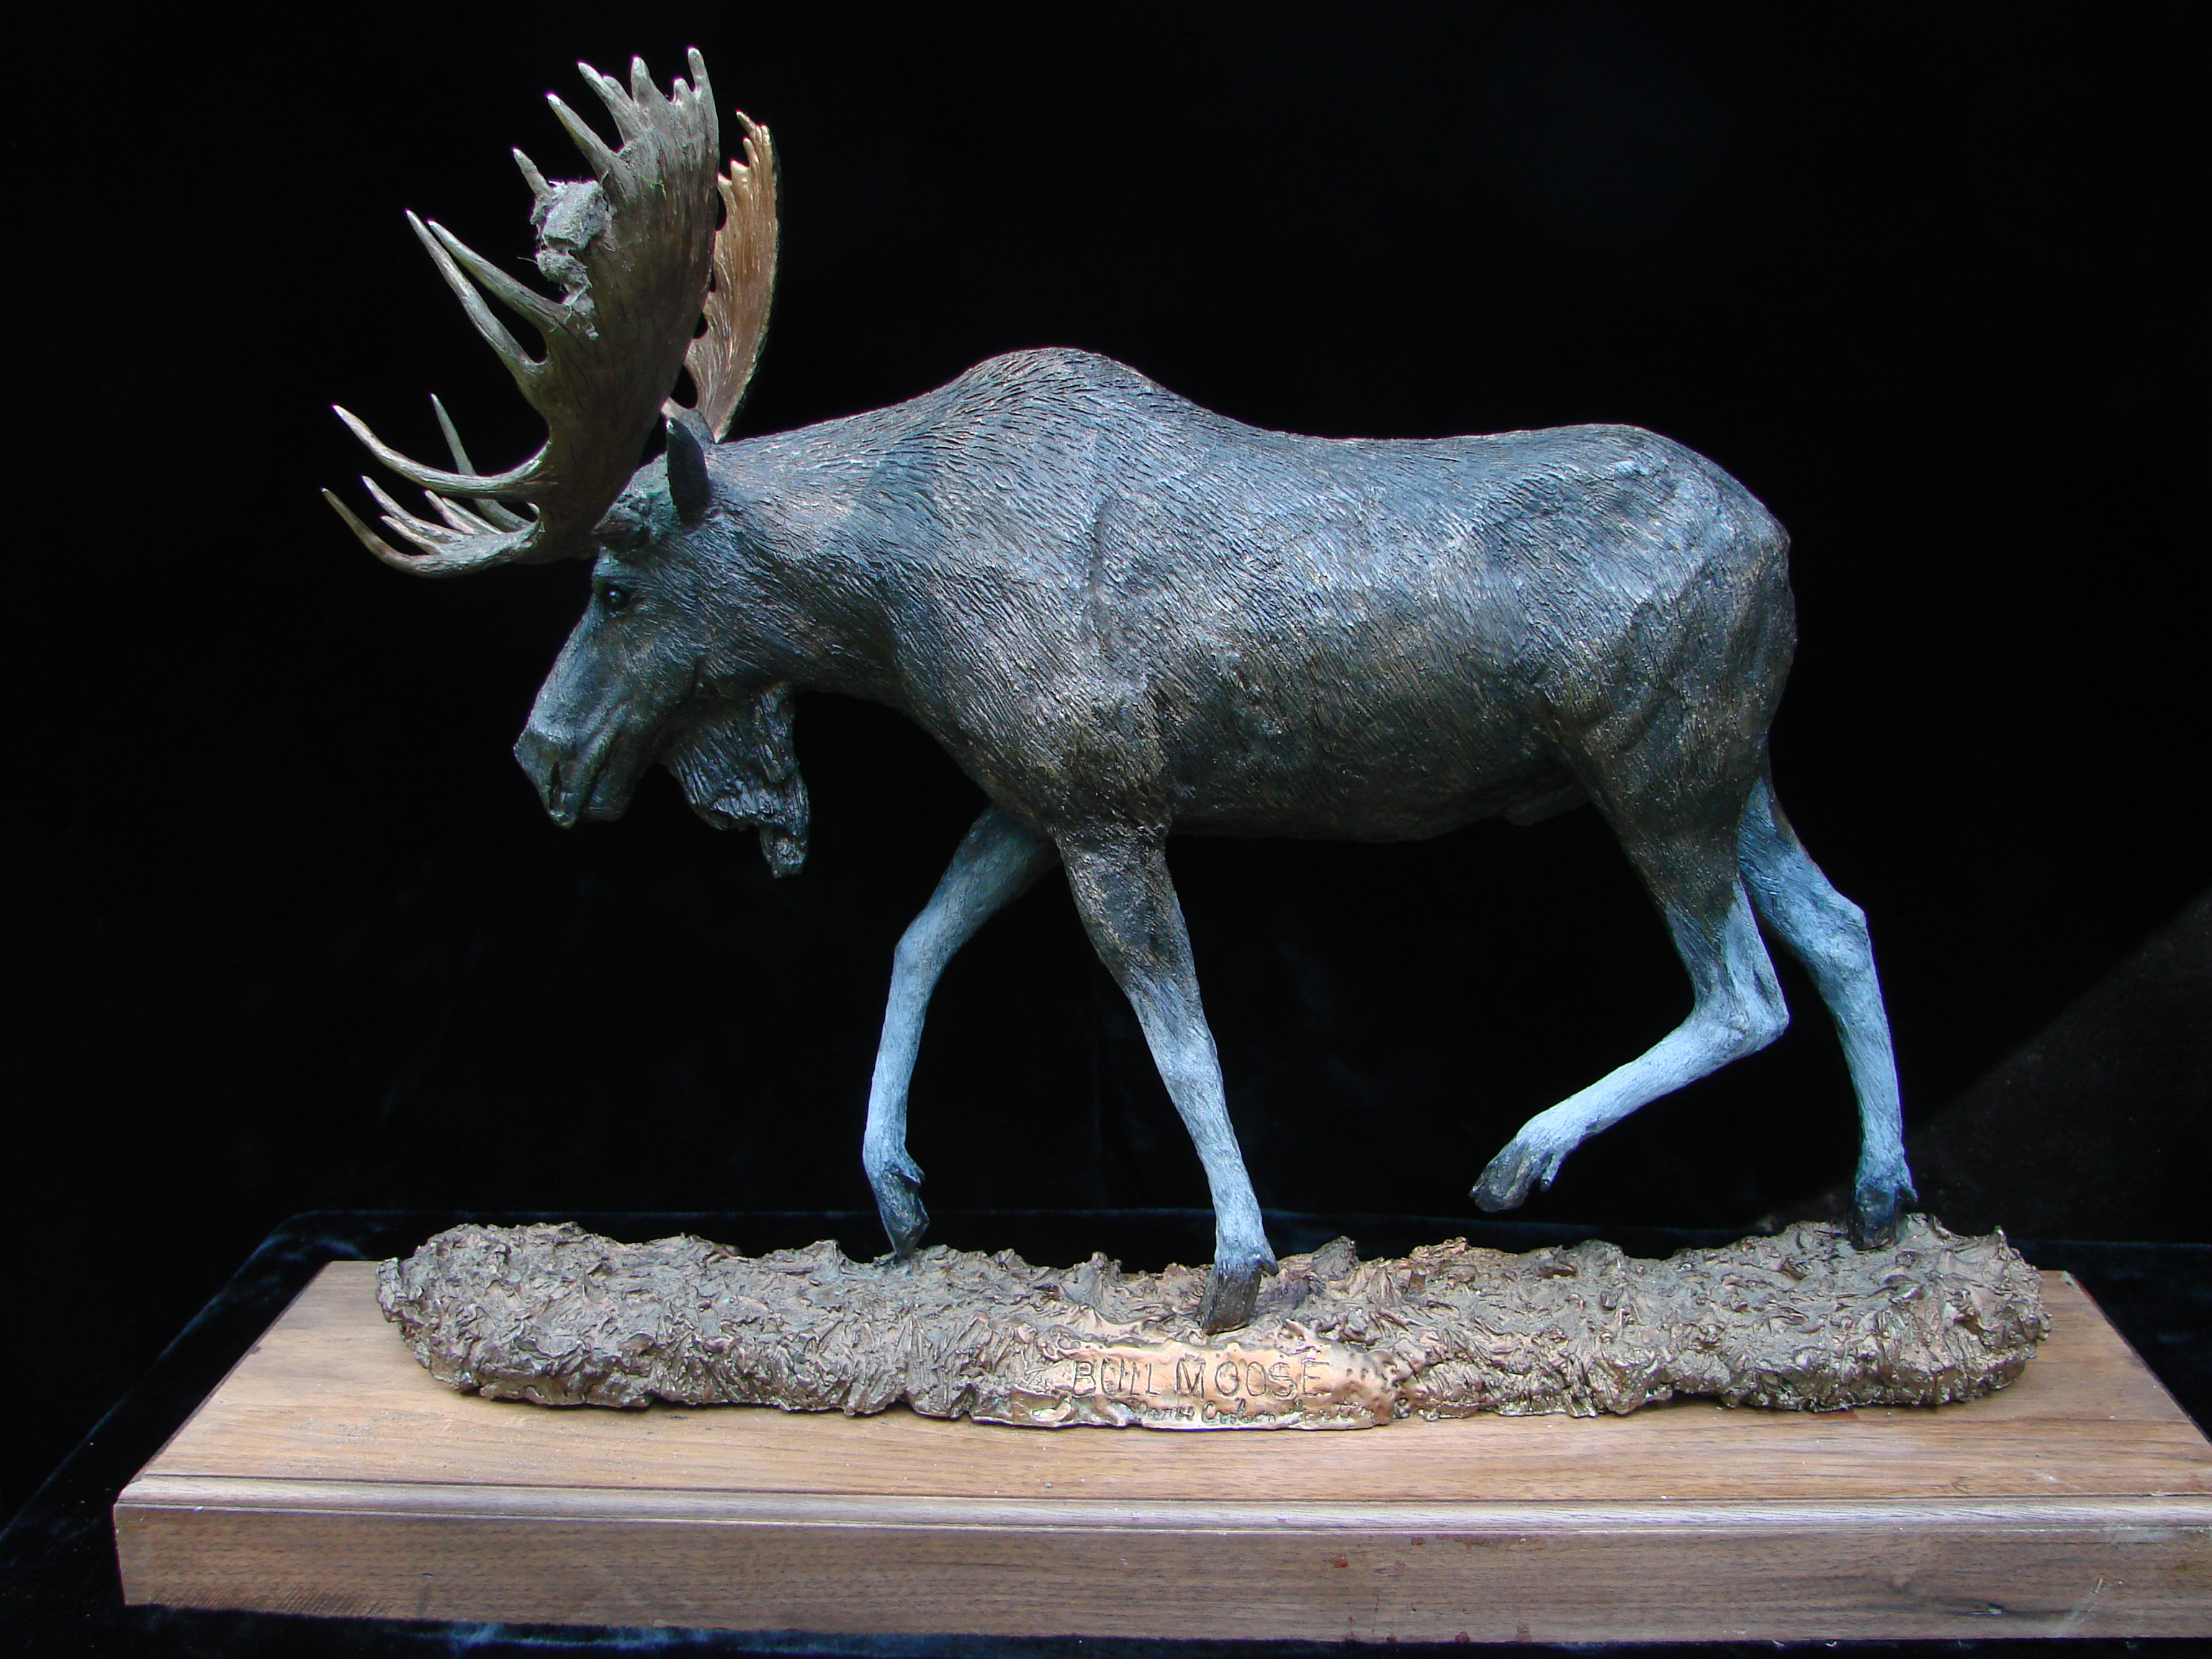 """Bull Moose I"" by Jim Gartin 24"" x 6.5"" x 17""H - L/E 30 - Bronze"